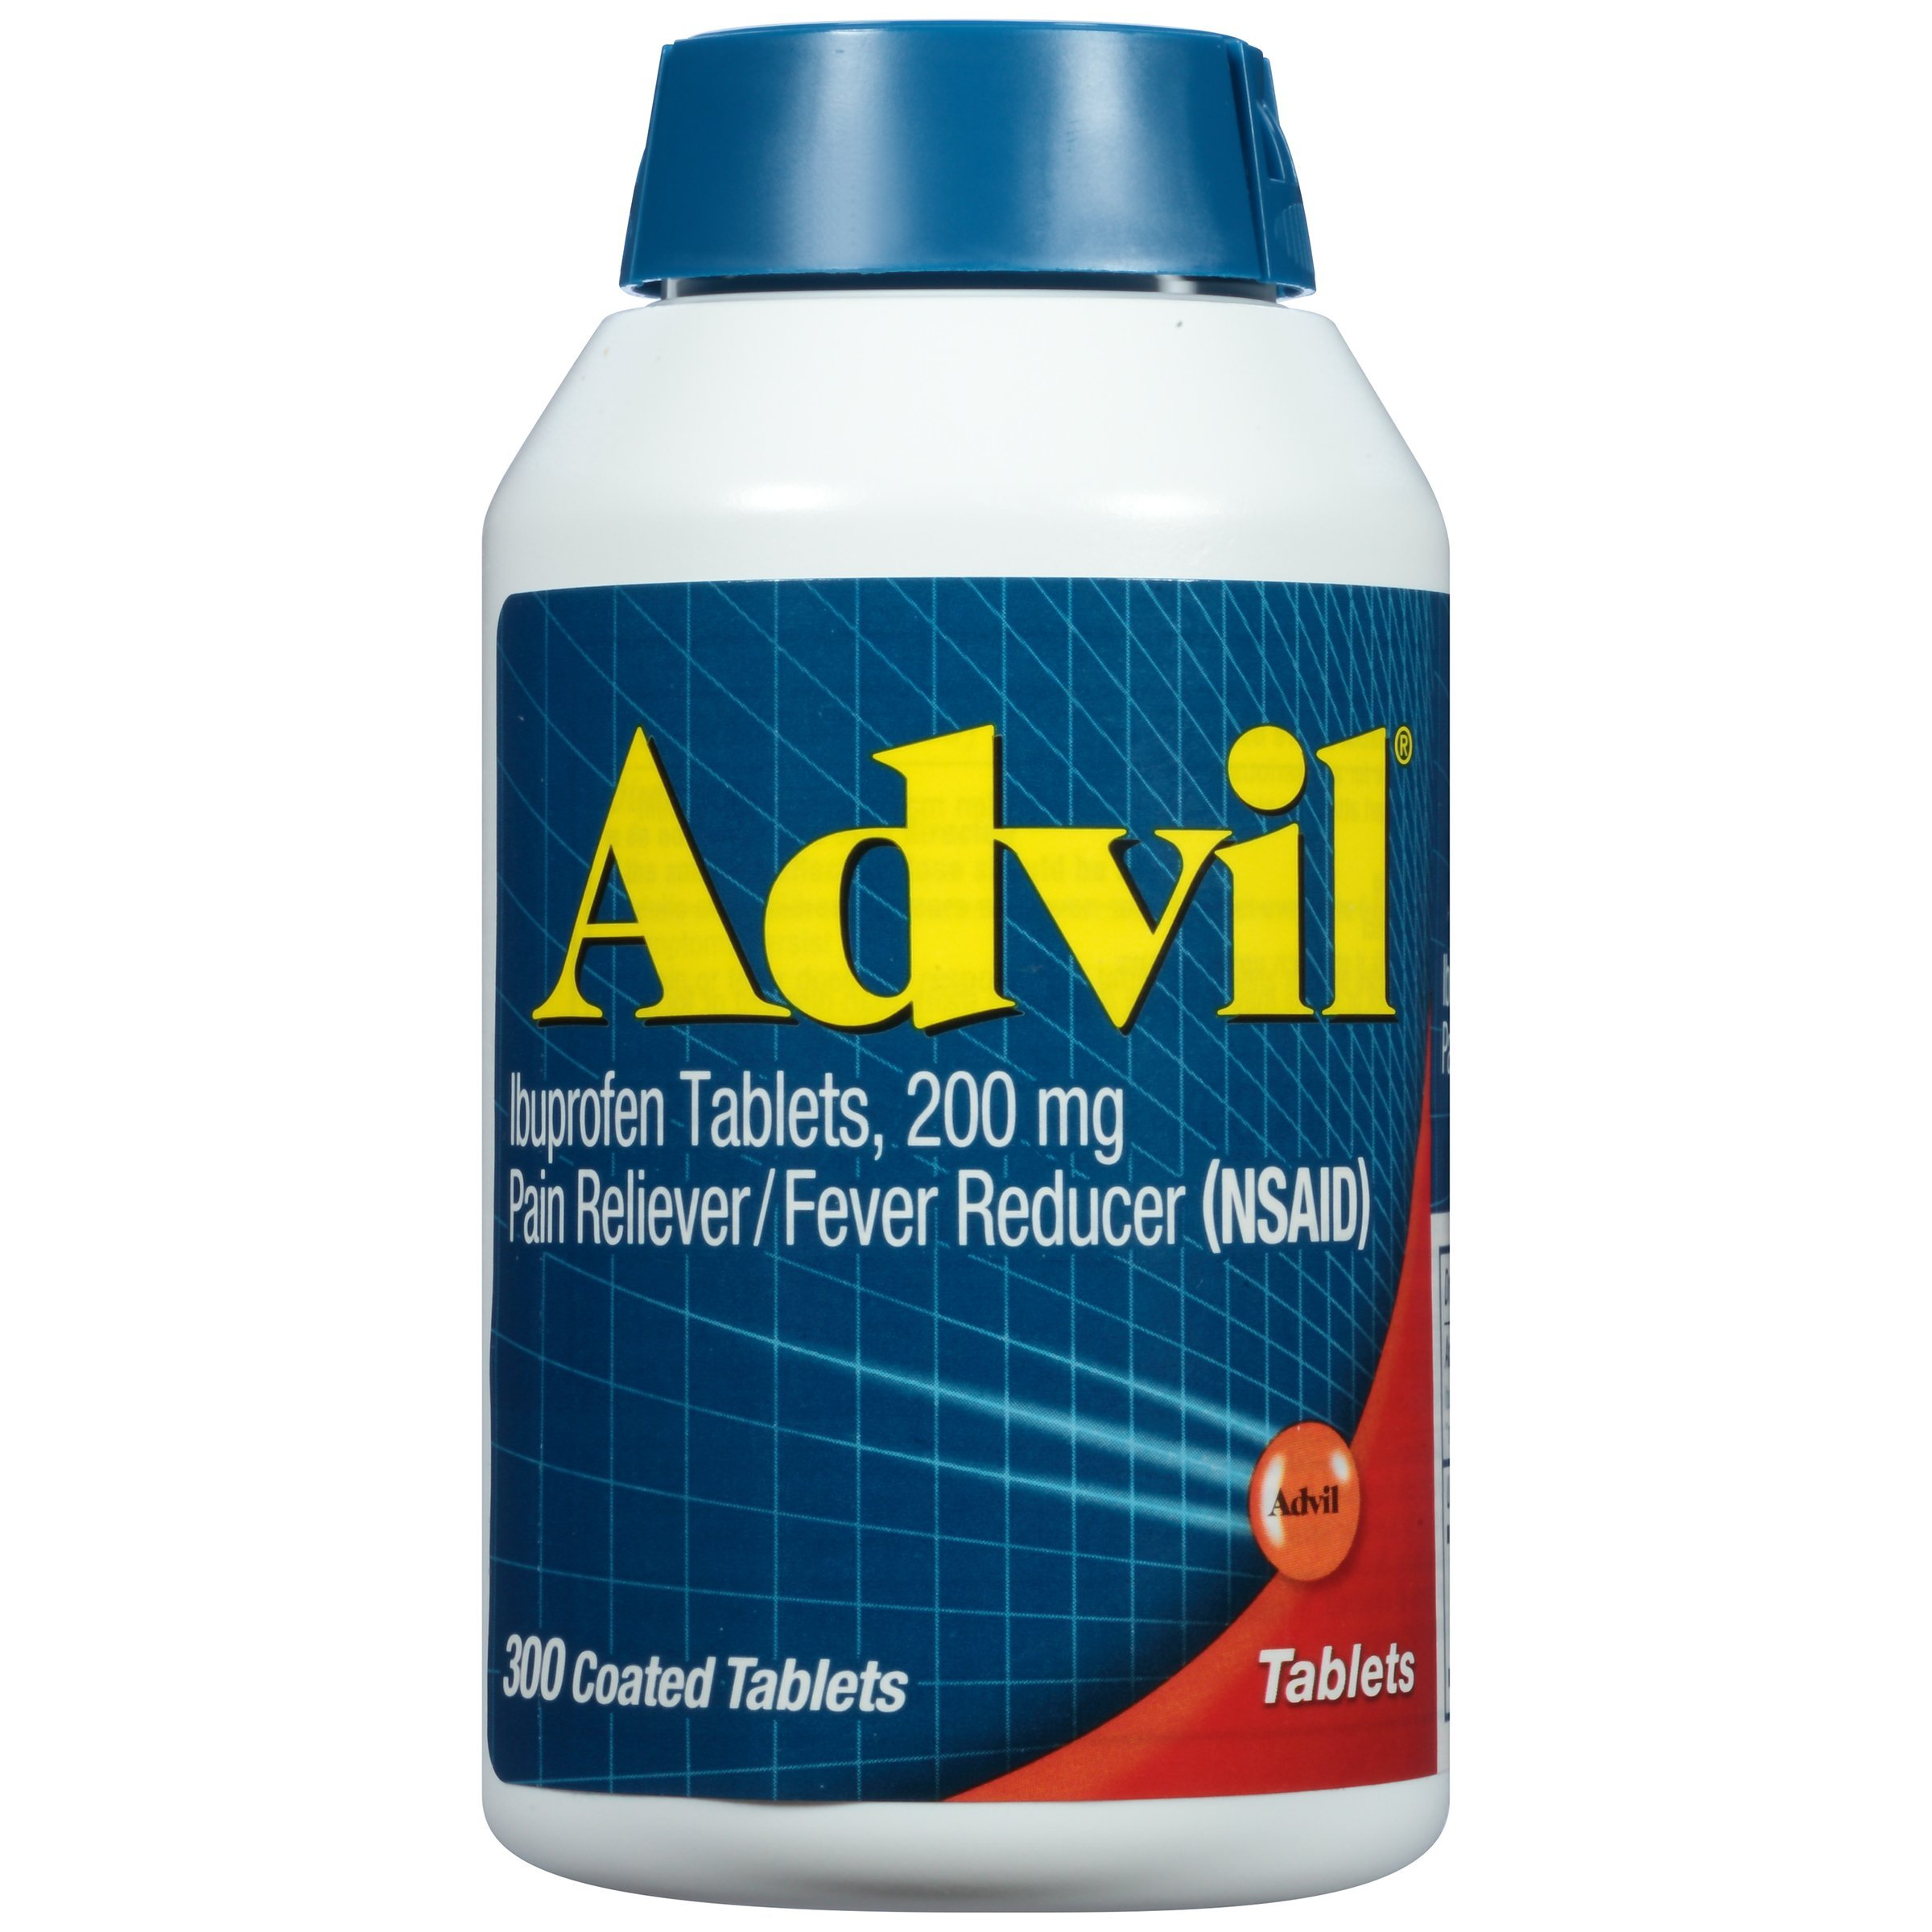 Advil (300 Count) Pain Reliever/Fever Reducer Coated Tablet, 200mg Ibuprofen, Temporary Pain Relief